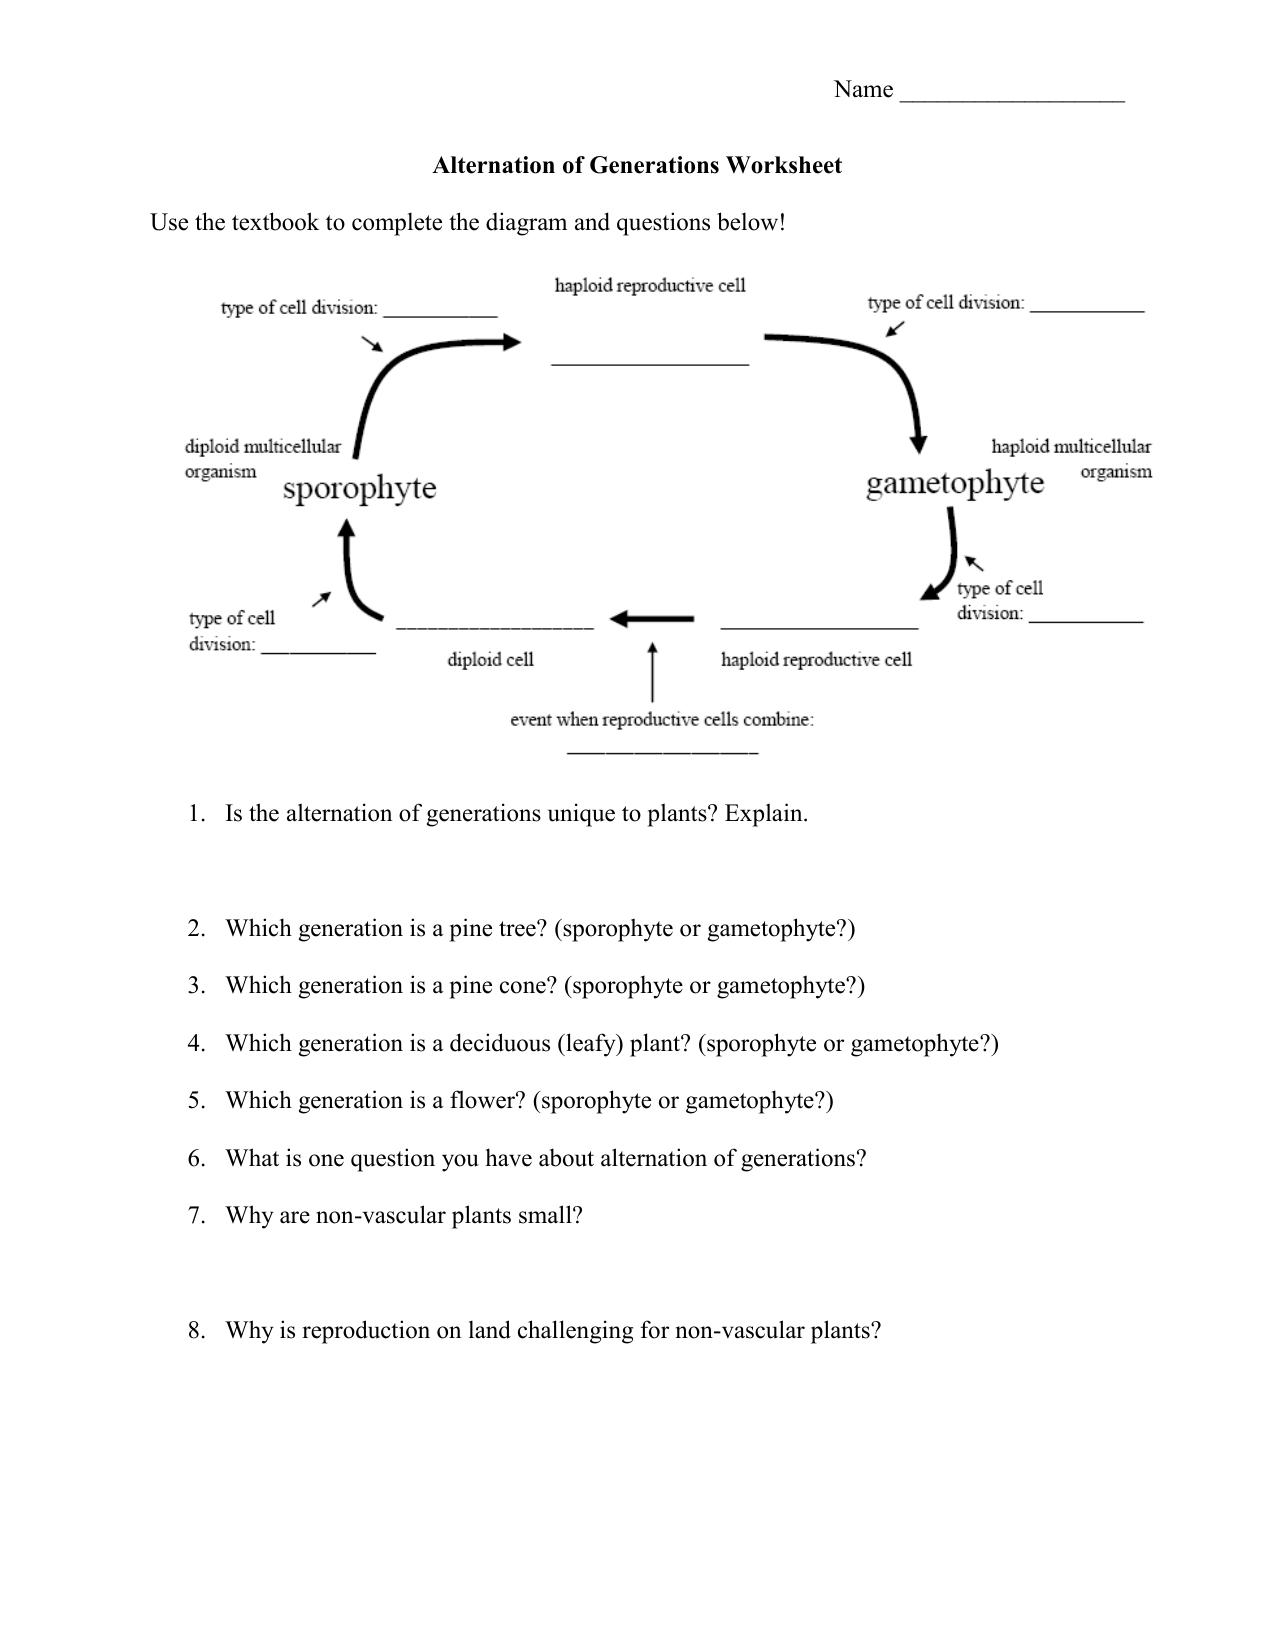 0099538641825579ba740b2bea692050bf7cb765d6png – Vascular and Nonvascular Plants Worksheet